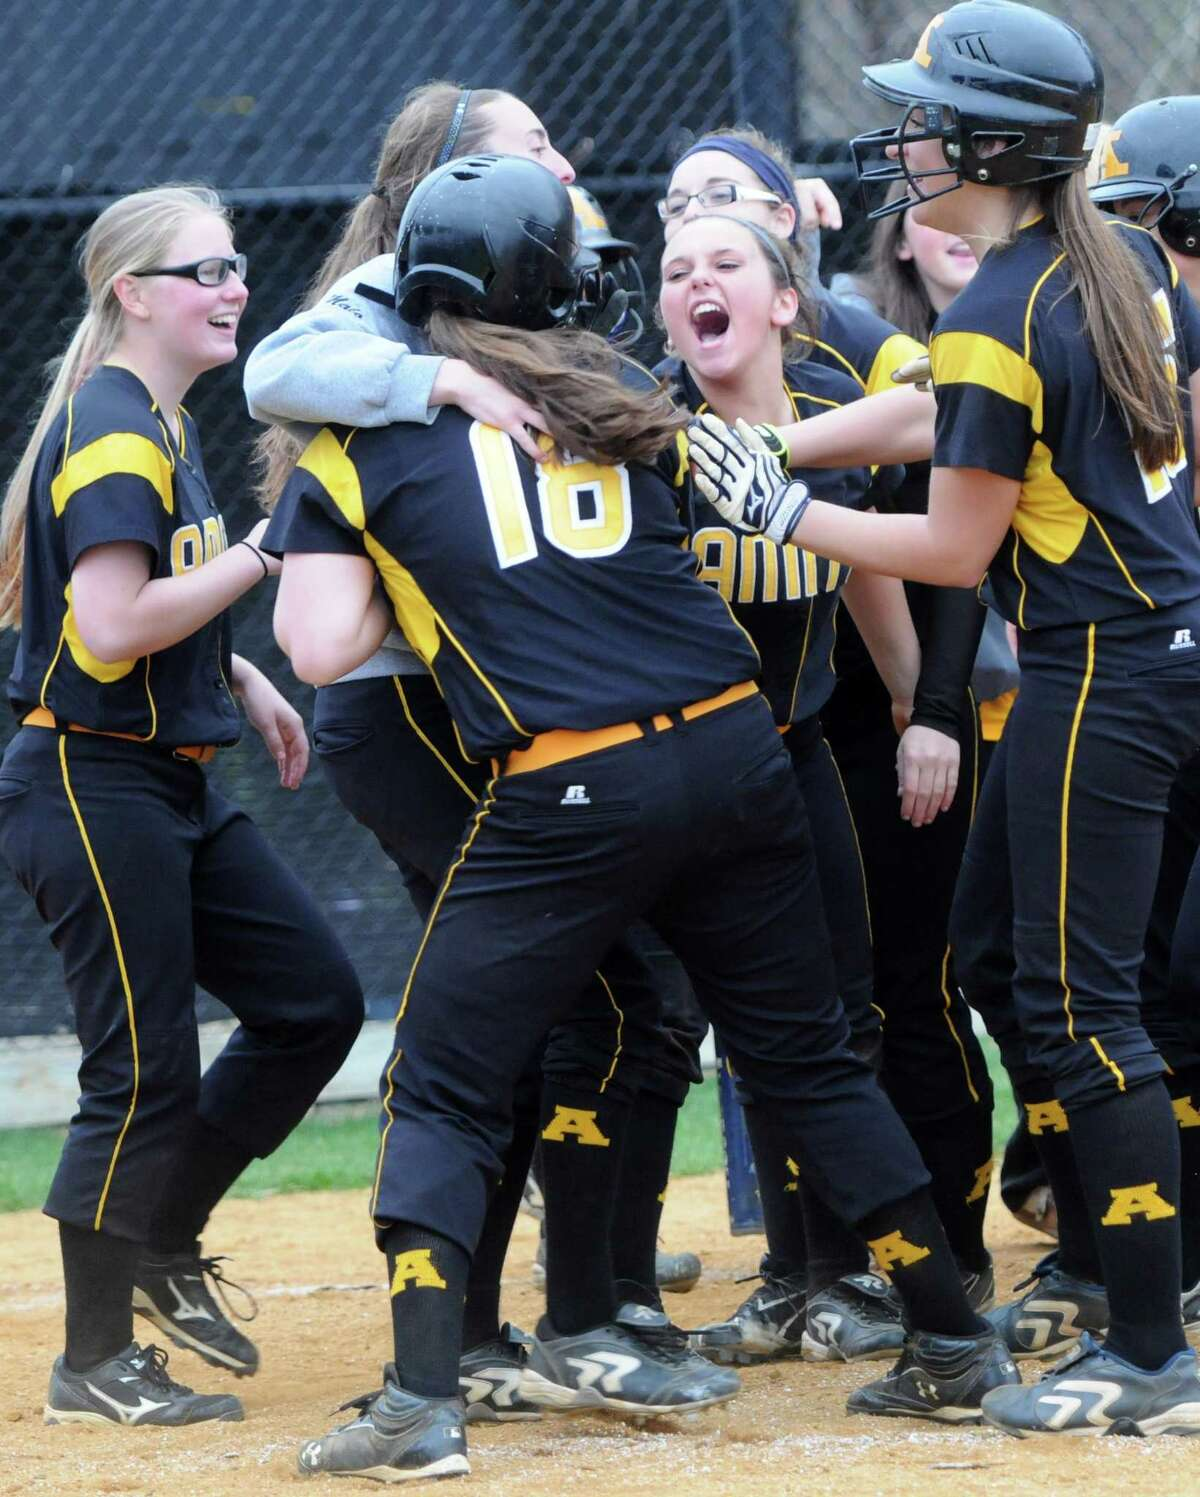 Jenna DiLorenzo of Amity, third from left back to camera, is congratulated by teammates after hitting a home run against Sheehan during fifth-inning softball action at Amity. Photo by Peter Hvizdak /New Haven Register